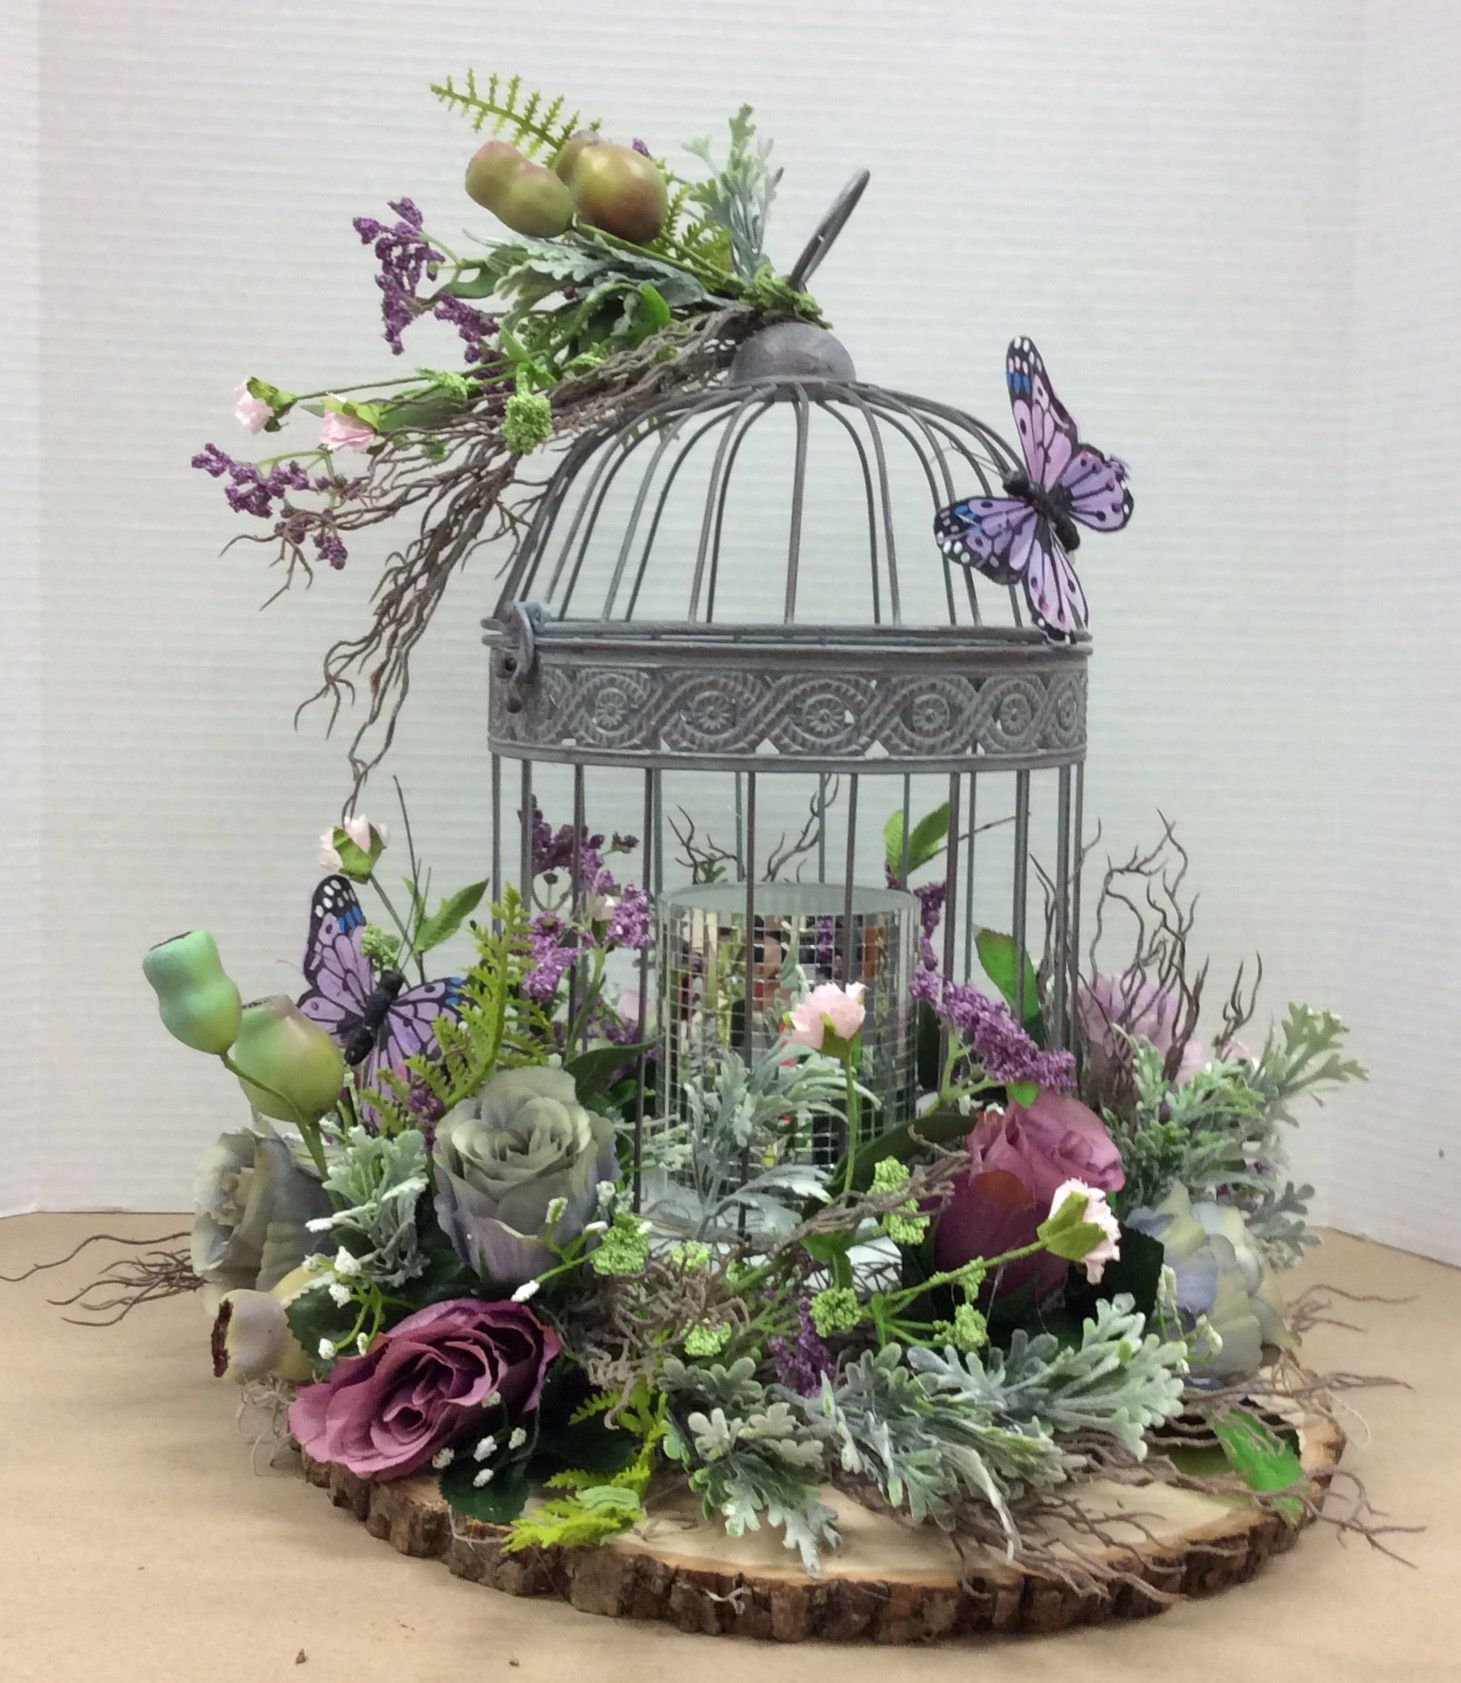 Floral design i made using wire bird cage glued to foam